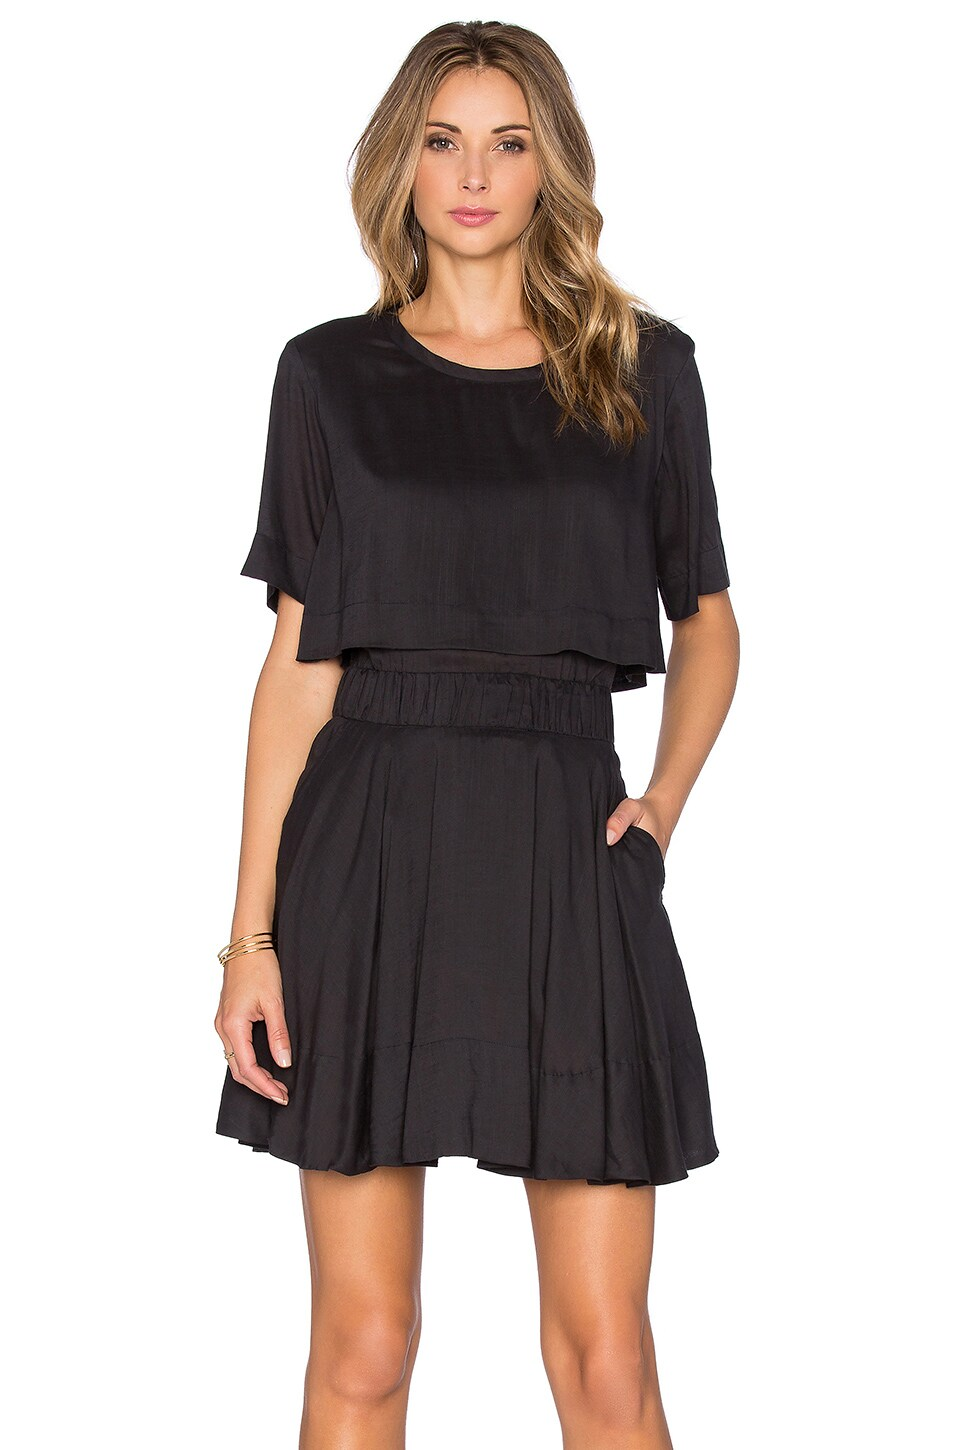 IRO Felly Dress in Black